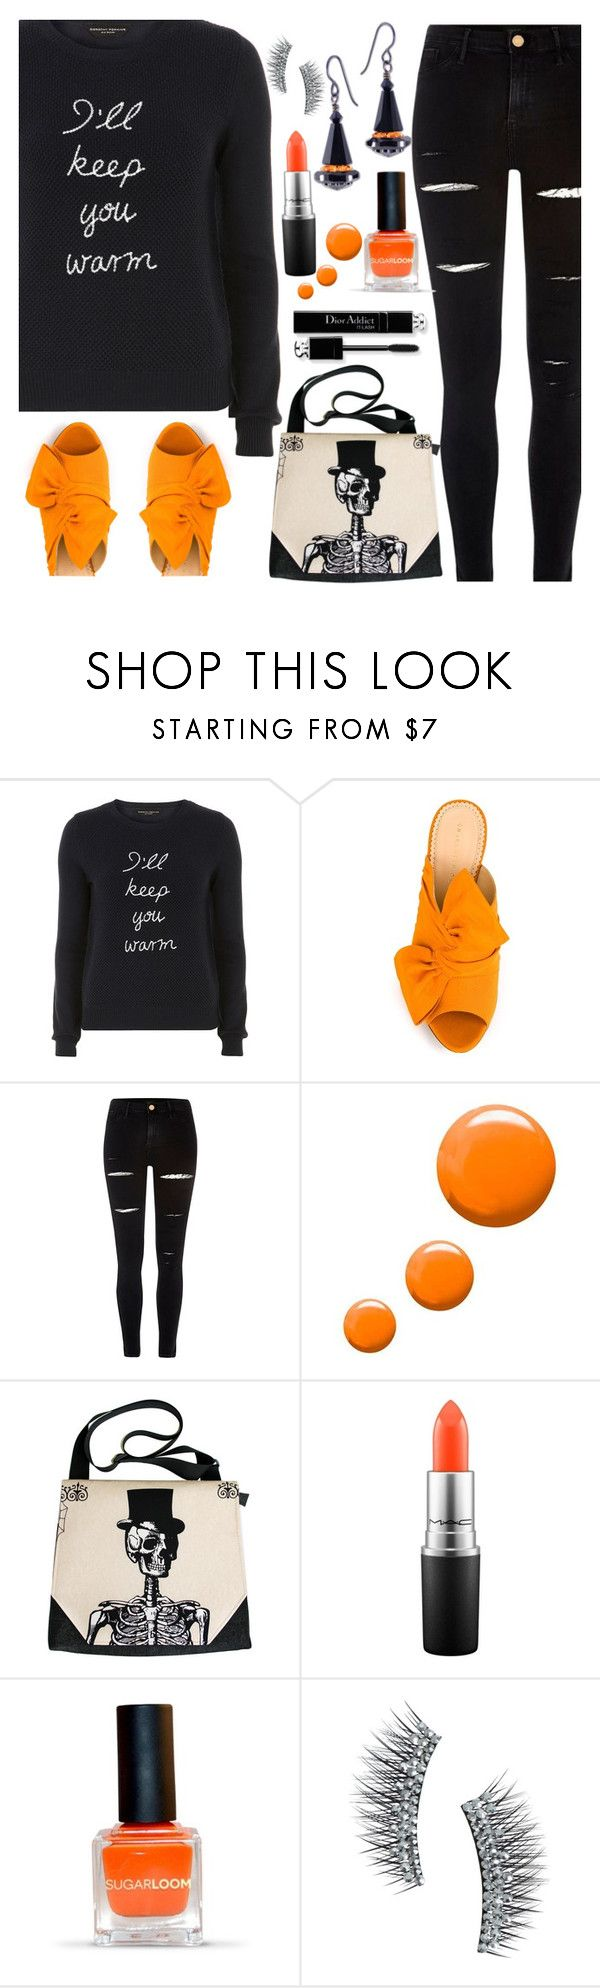 """I'll Keep You Warm"" by deborah-calton ❤ liked on Polyvore featuring Dorothy Perkins, Charlotte Olympia, River Island, Topshop, MAC Cosmetics and Kre-at Beauty"